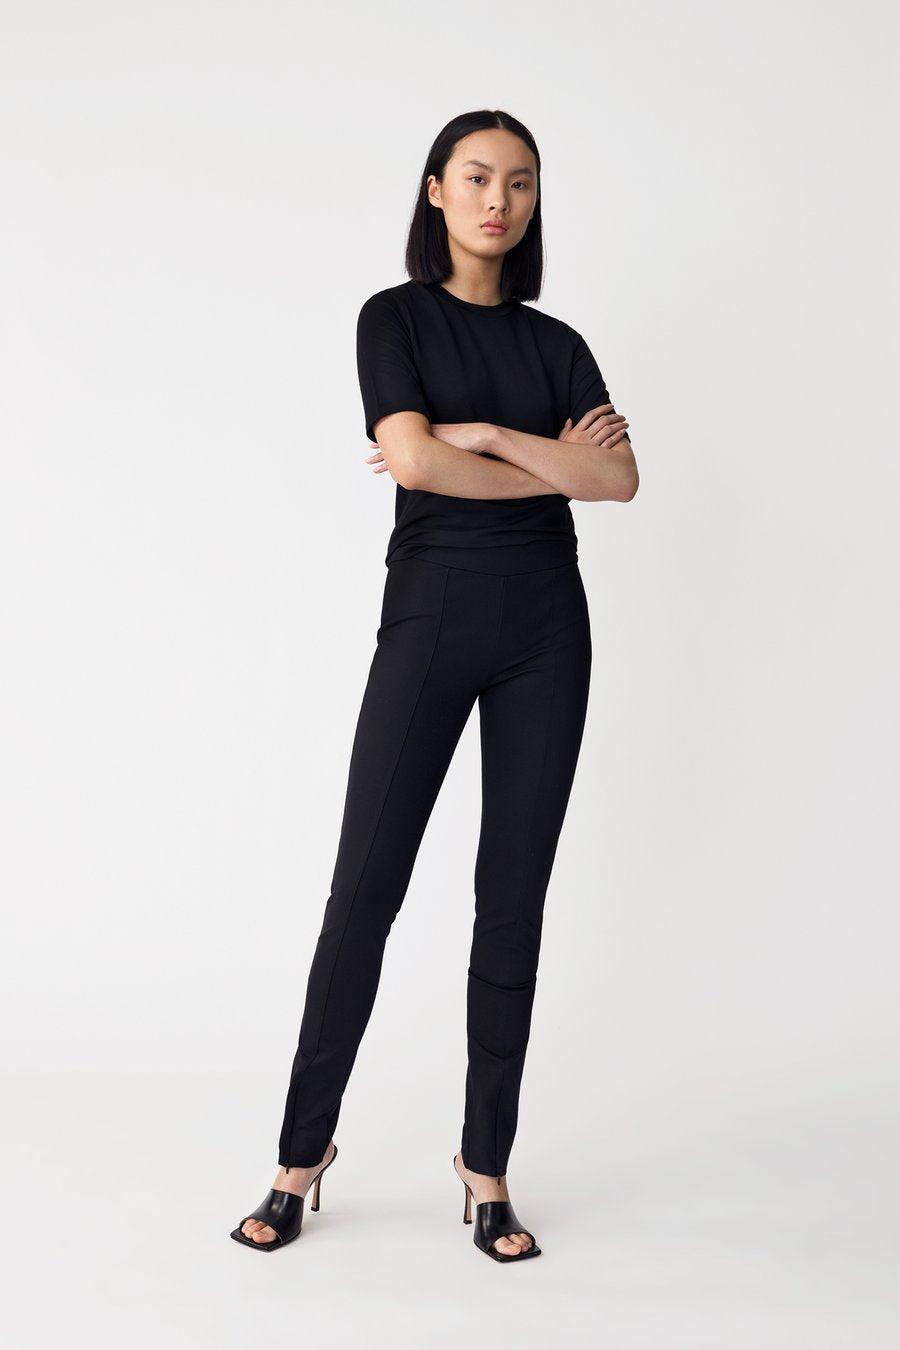 Stylein Daniella Trousers Black